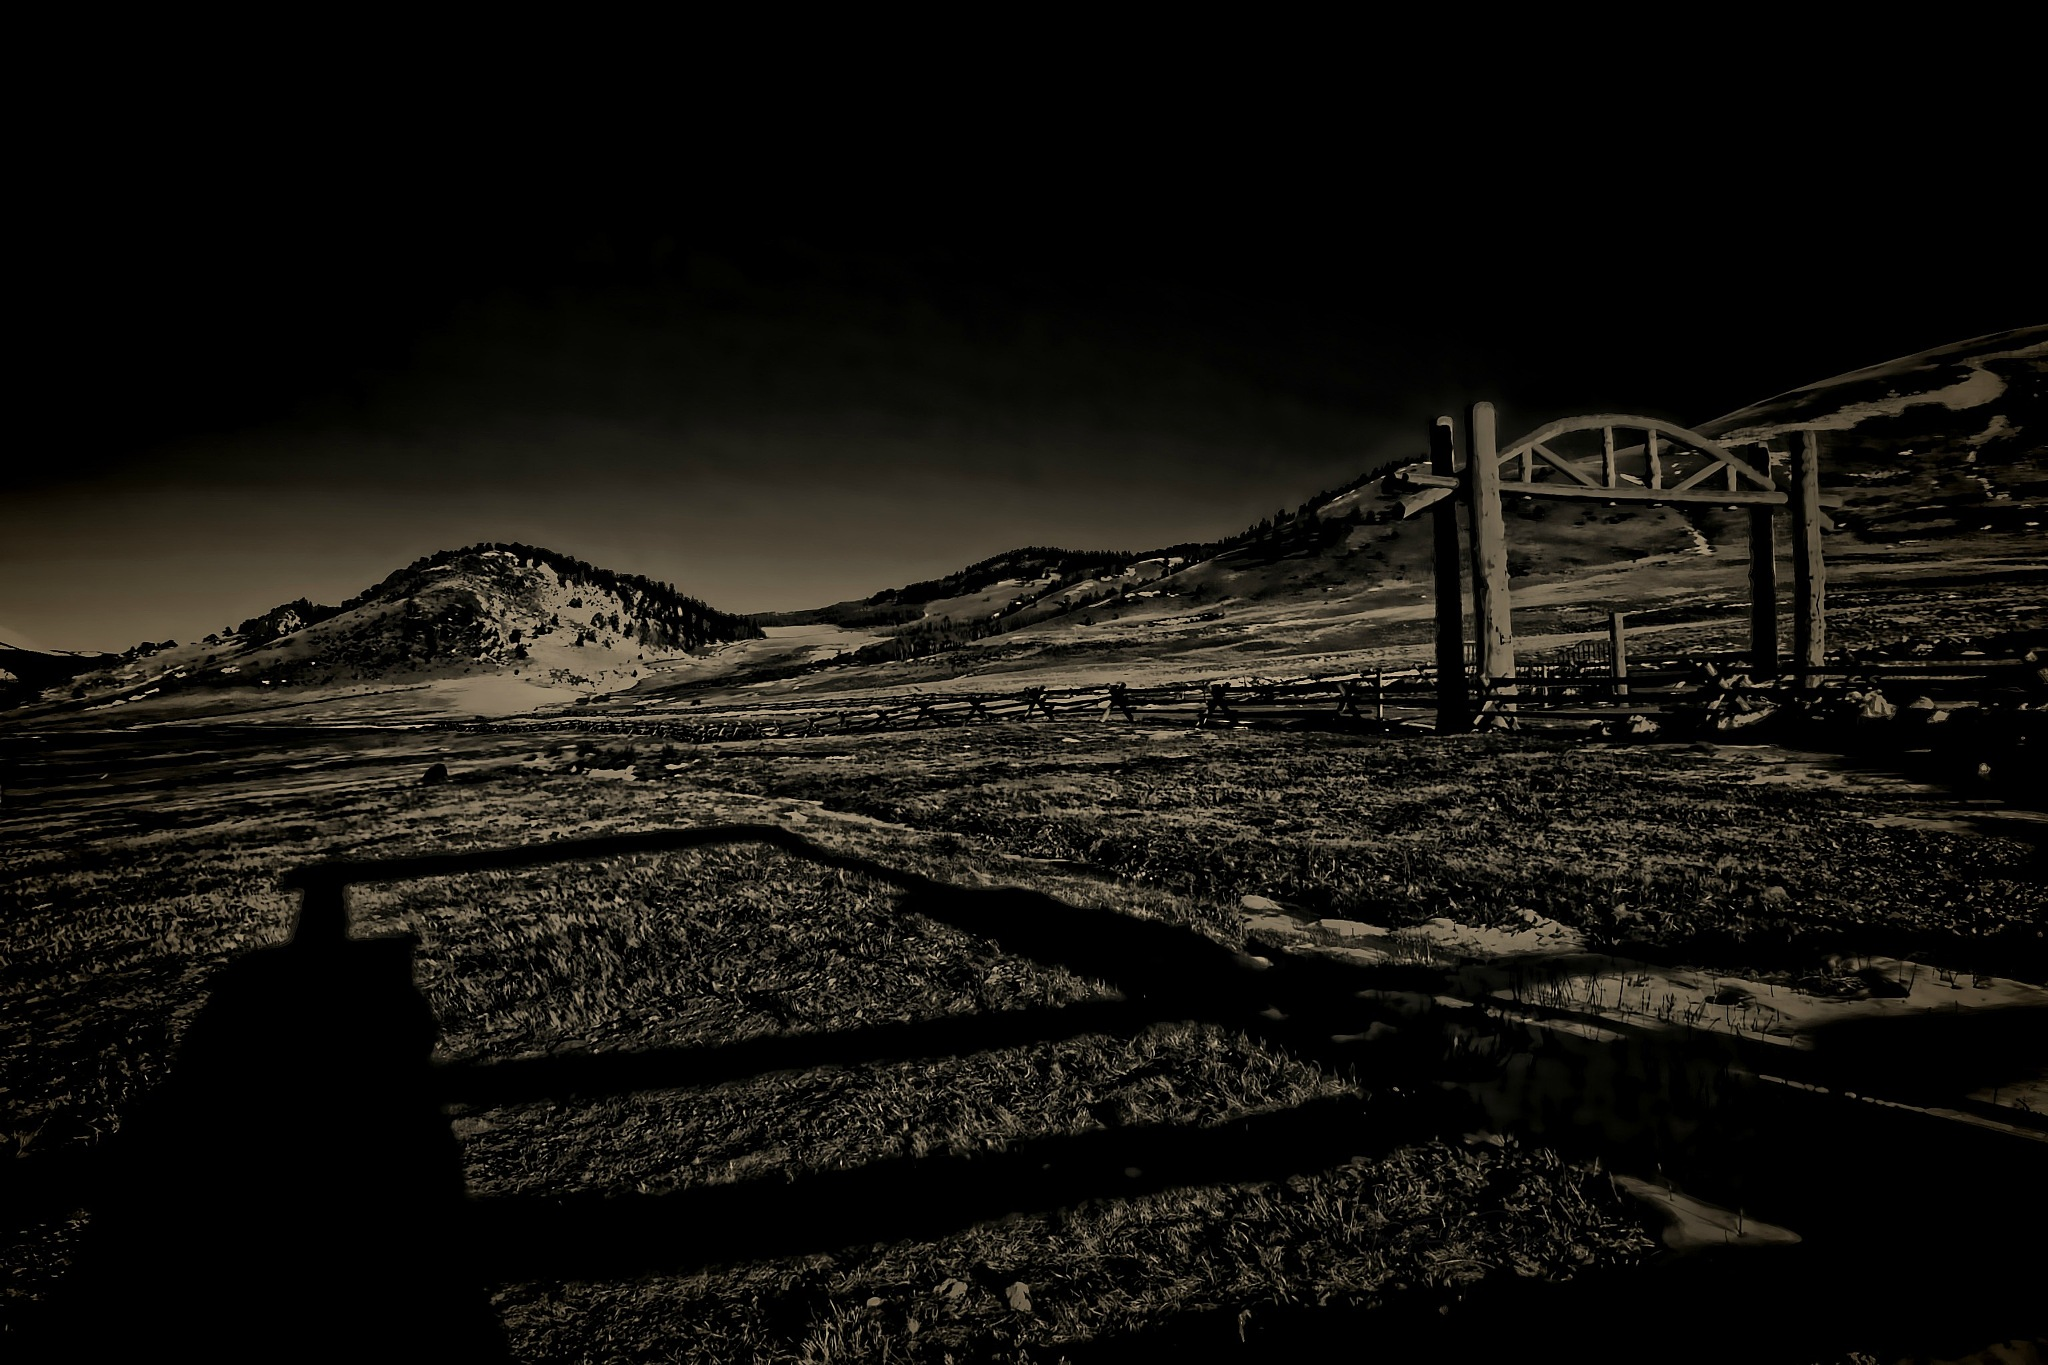 Ranch Gateway by Todd Yoder